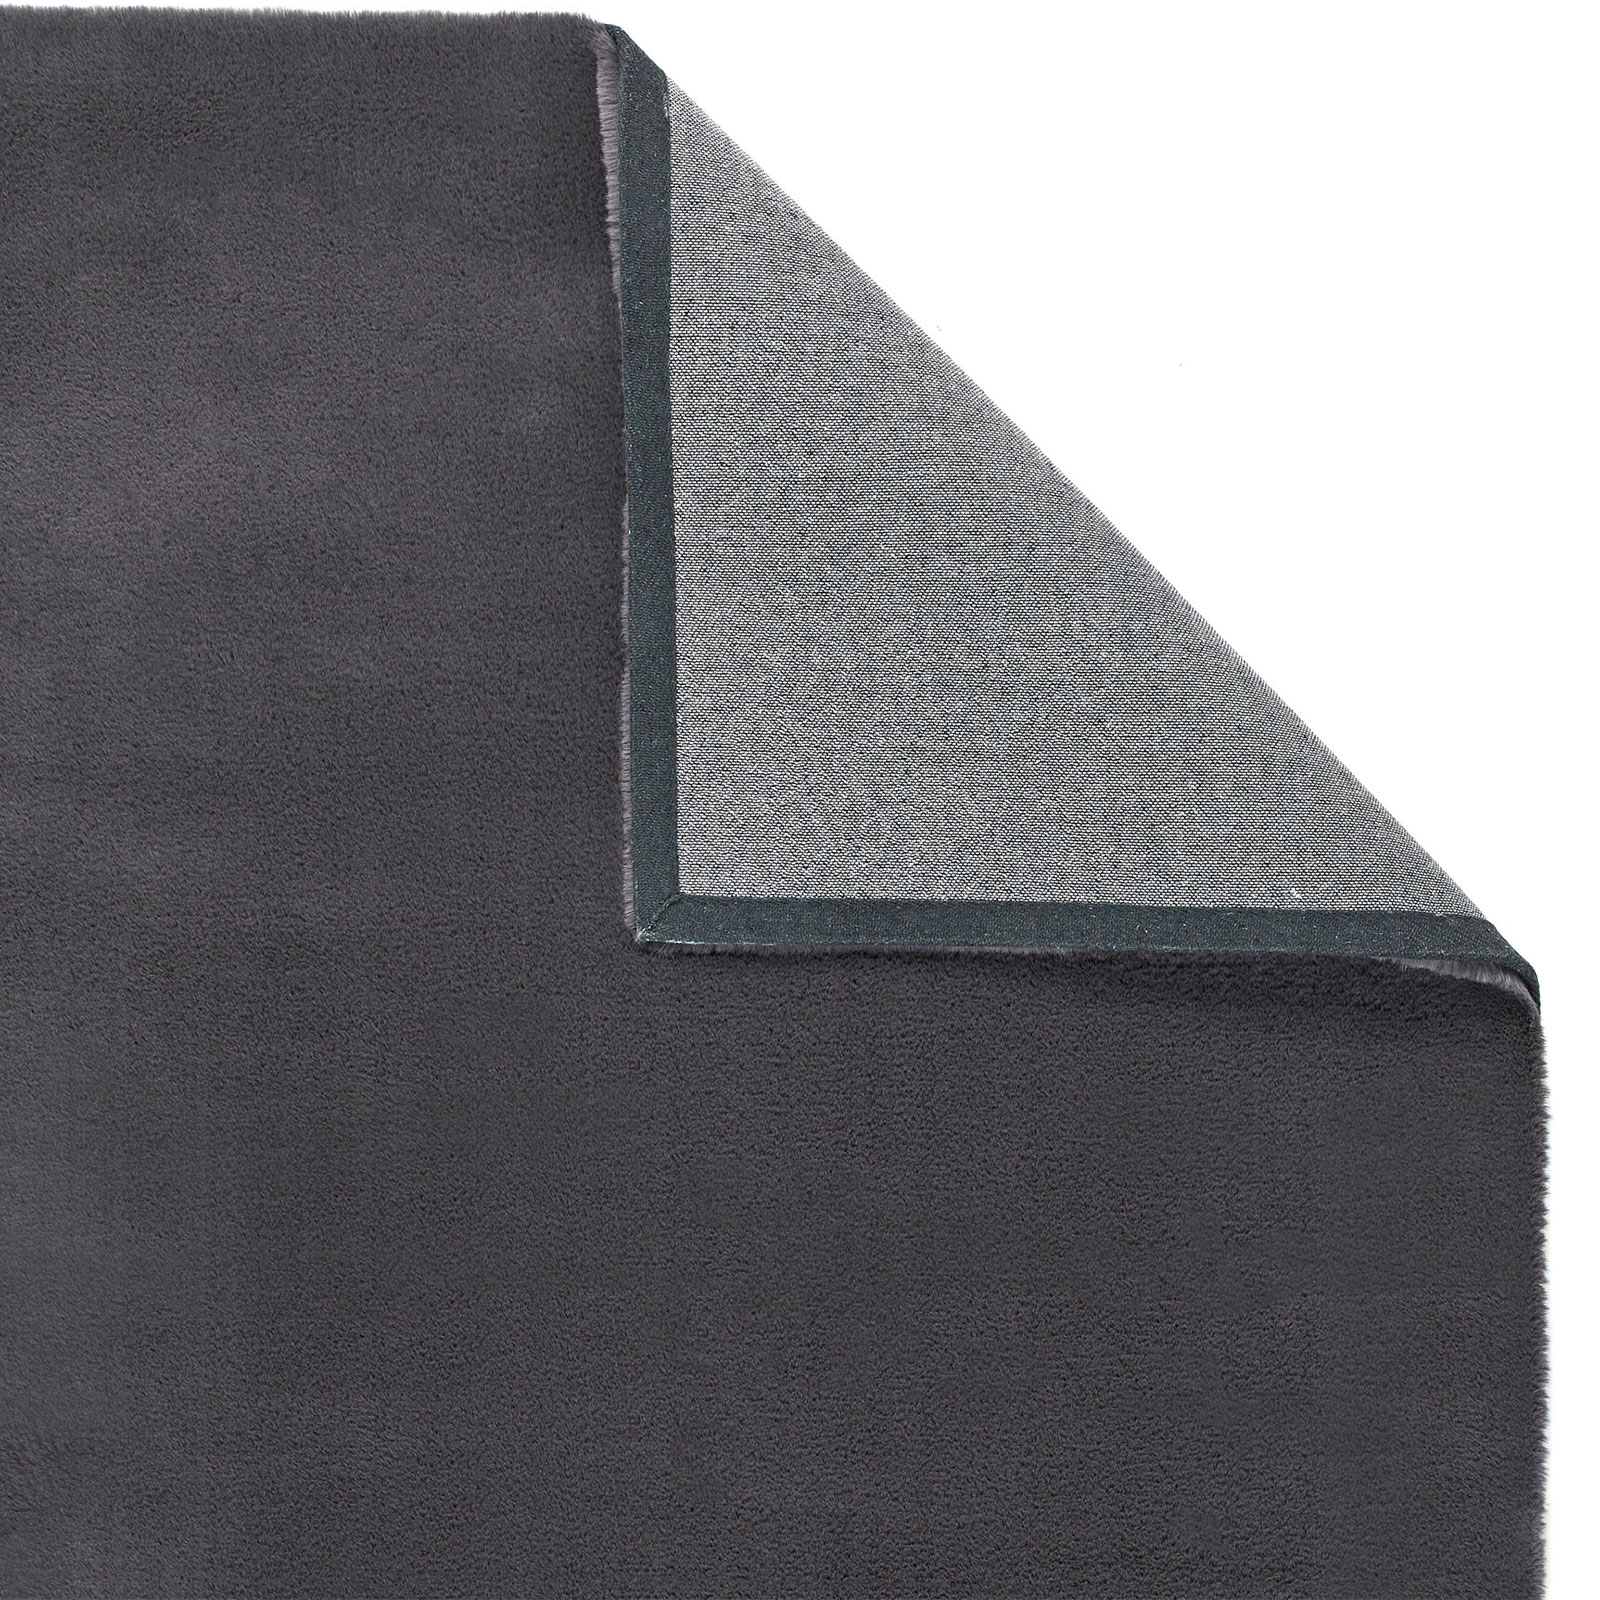 Comfy-Charcoal-Backing-.jpg